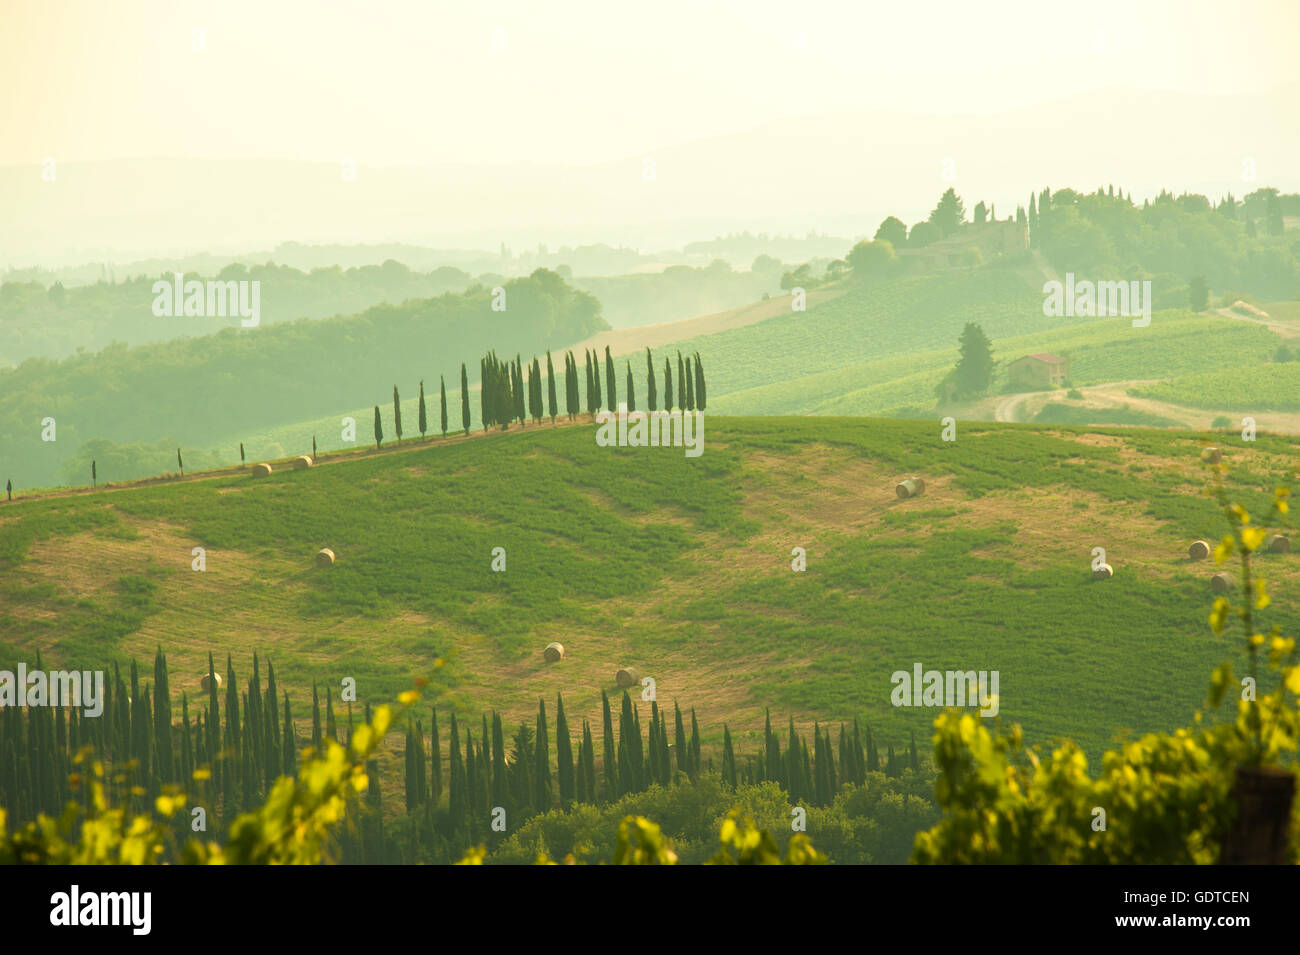 cypresses on hills light of the Crete Senesi, in the evening light near Pienza, Tuscany, Italy - Stock Image